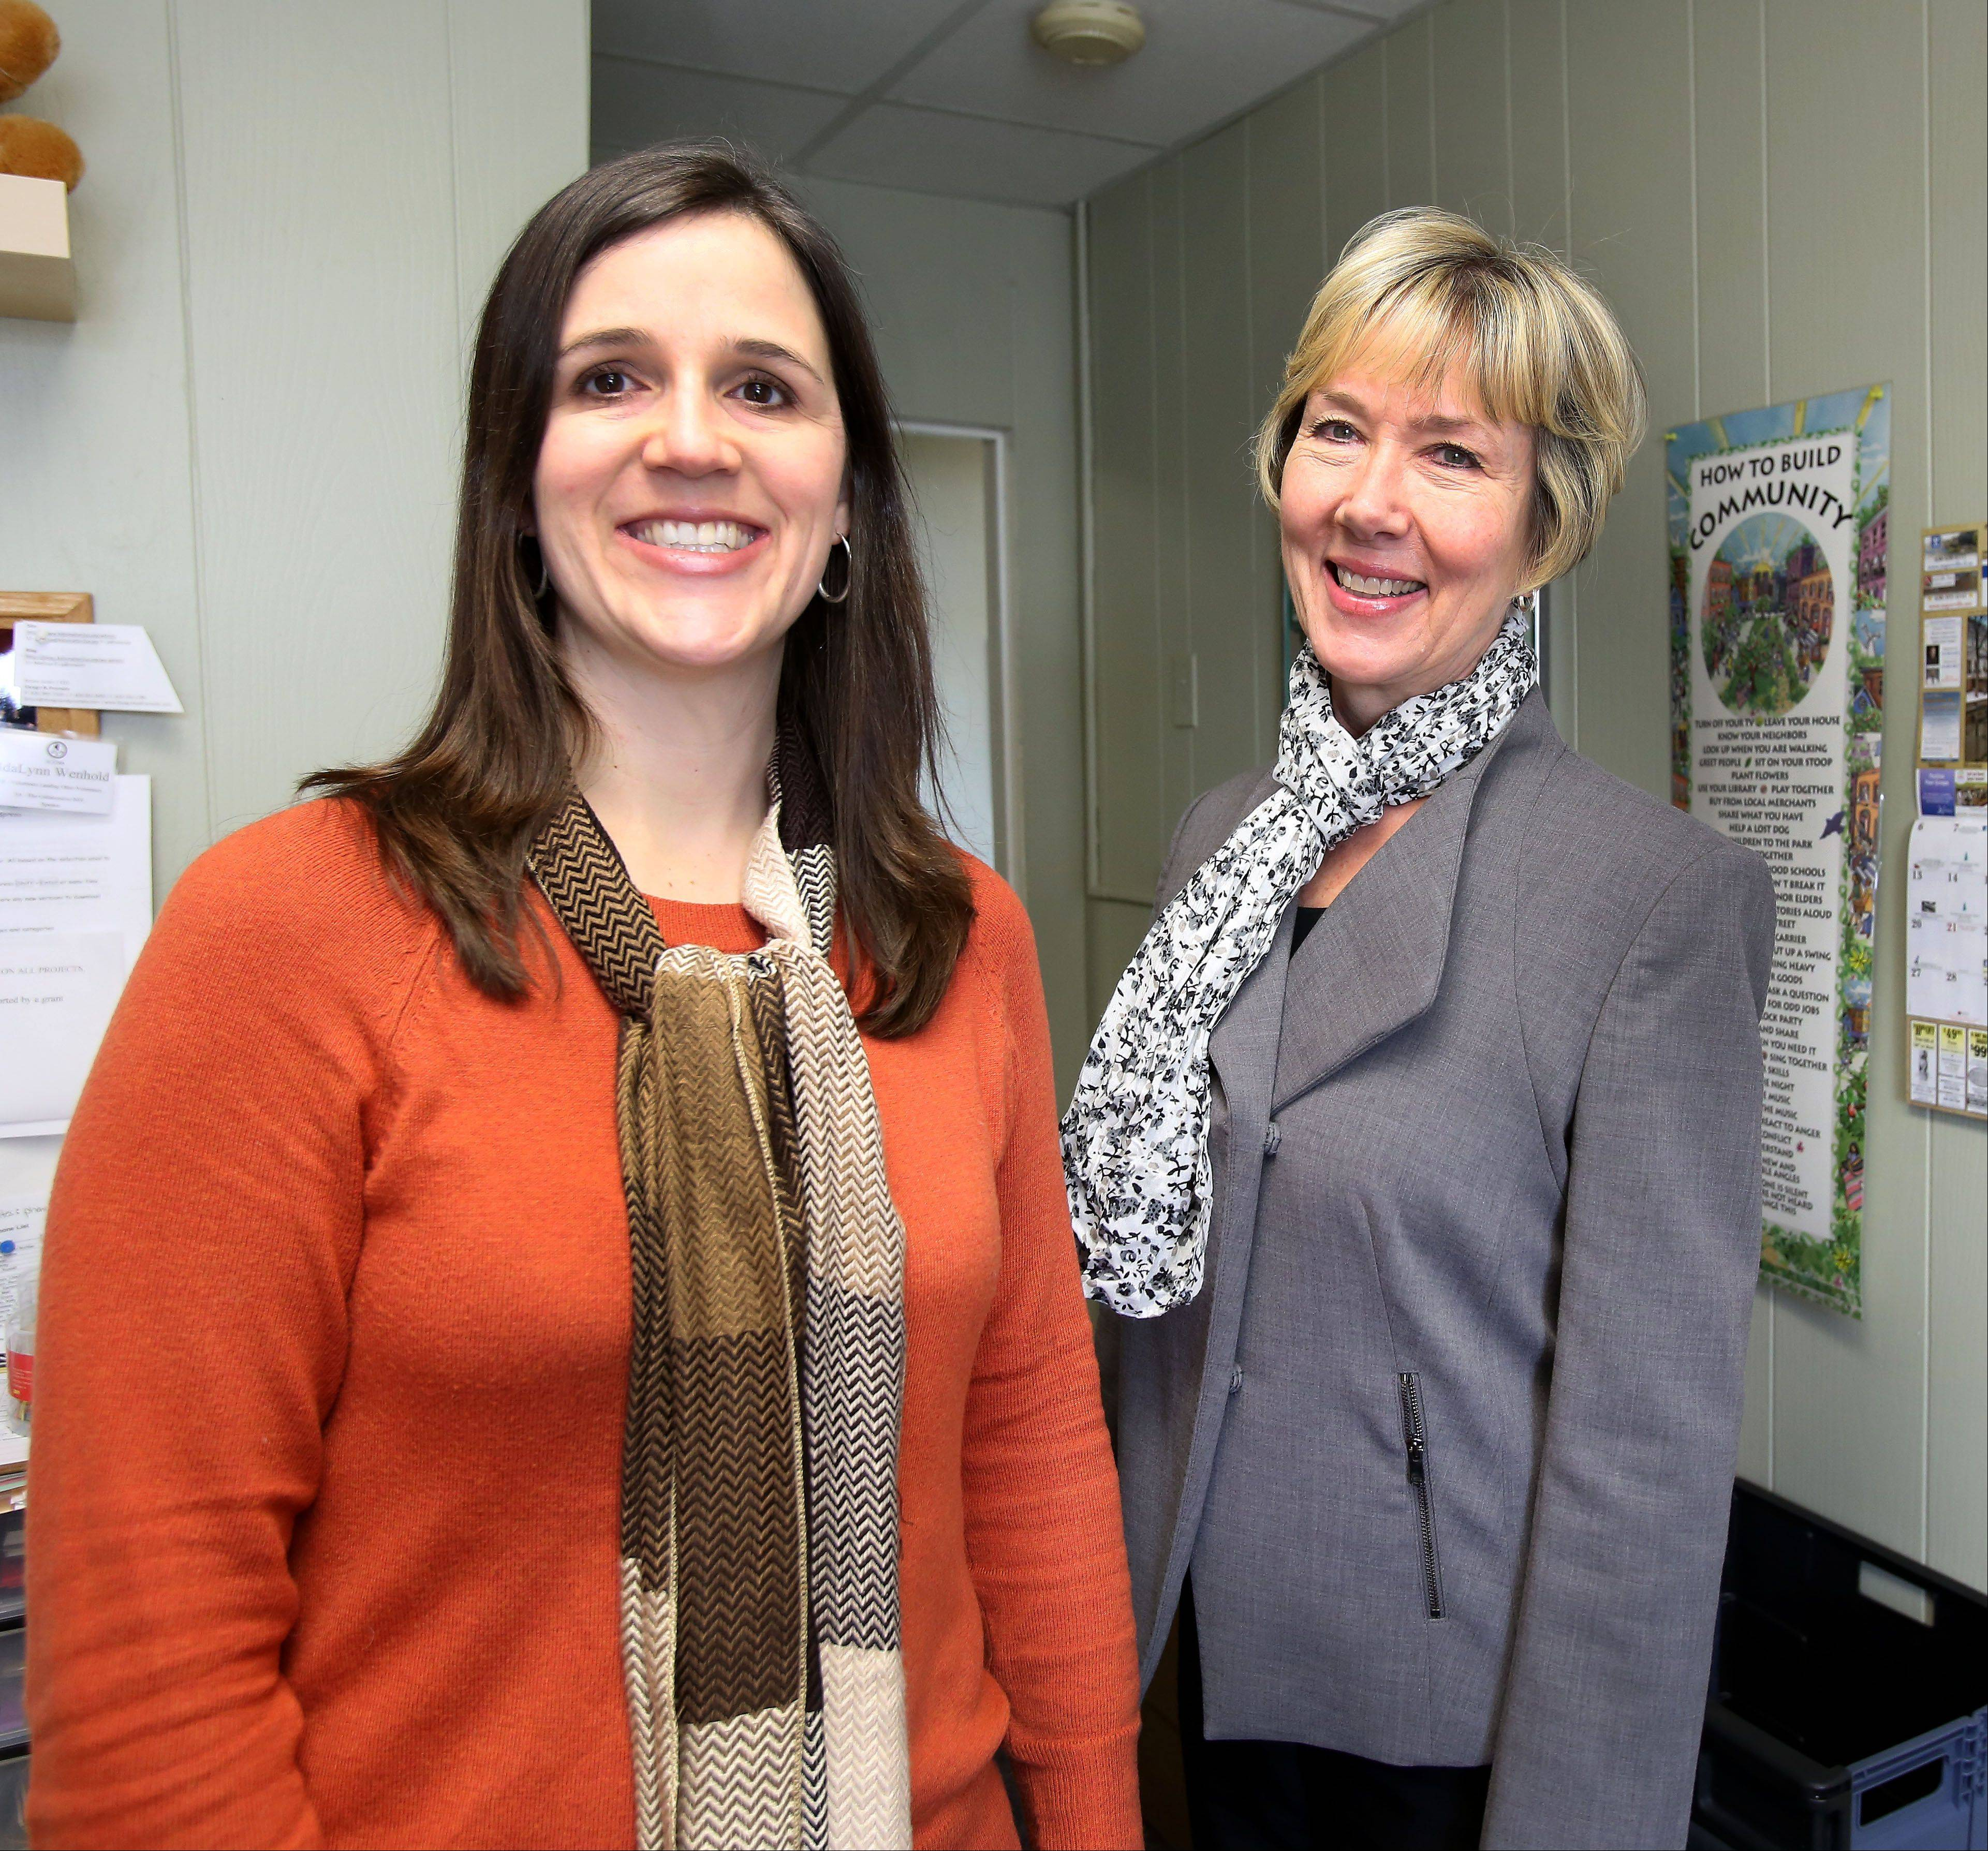 Marion Ruthig, left, founder of I Support Community with IdaLynn Wenhold, executive director of KidsMatter in Naperville, one of the charities featured on the I Support Community website.